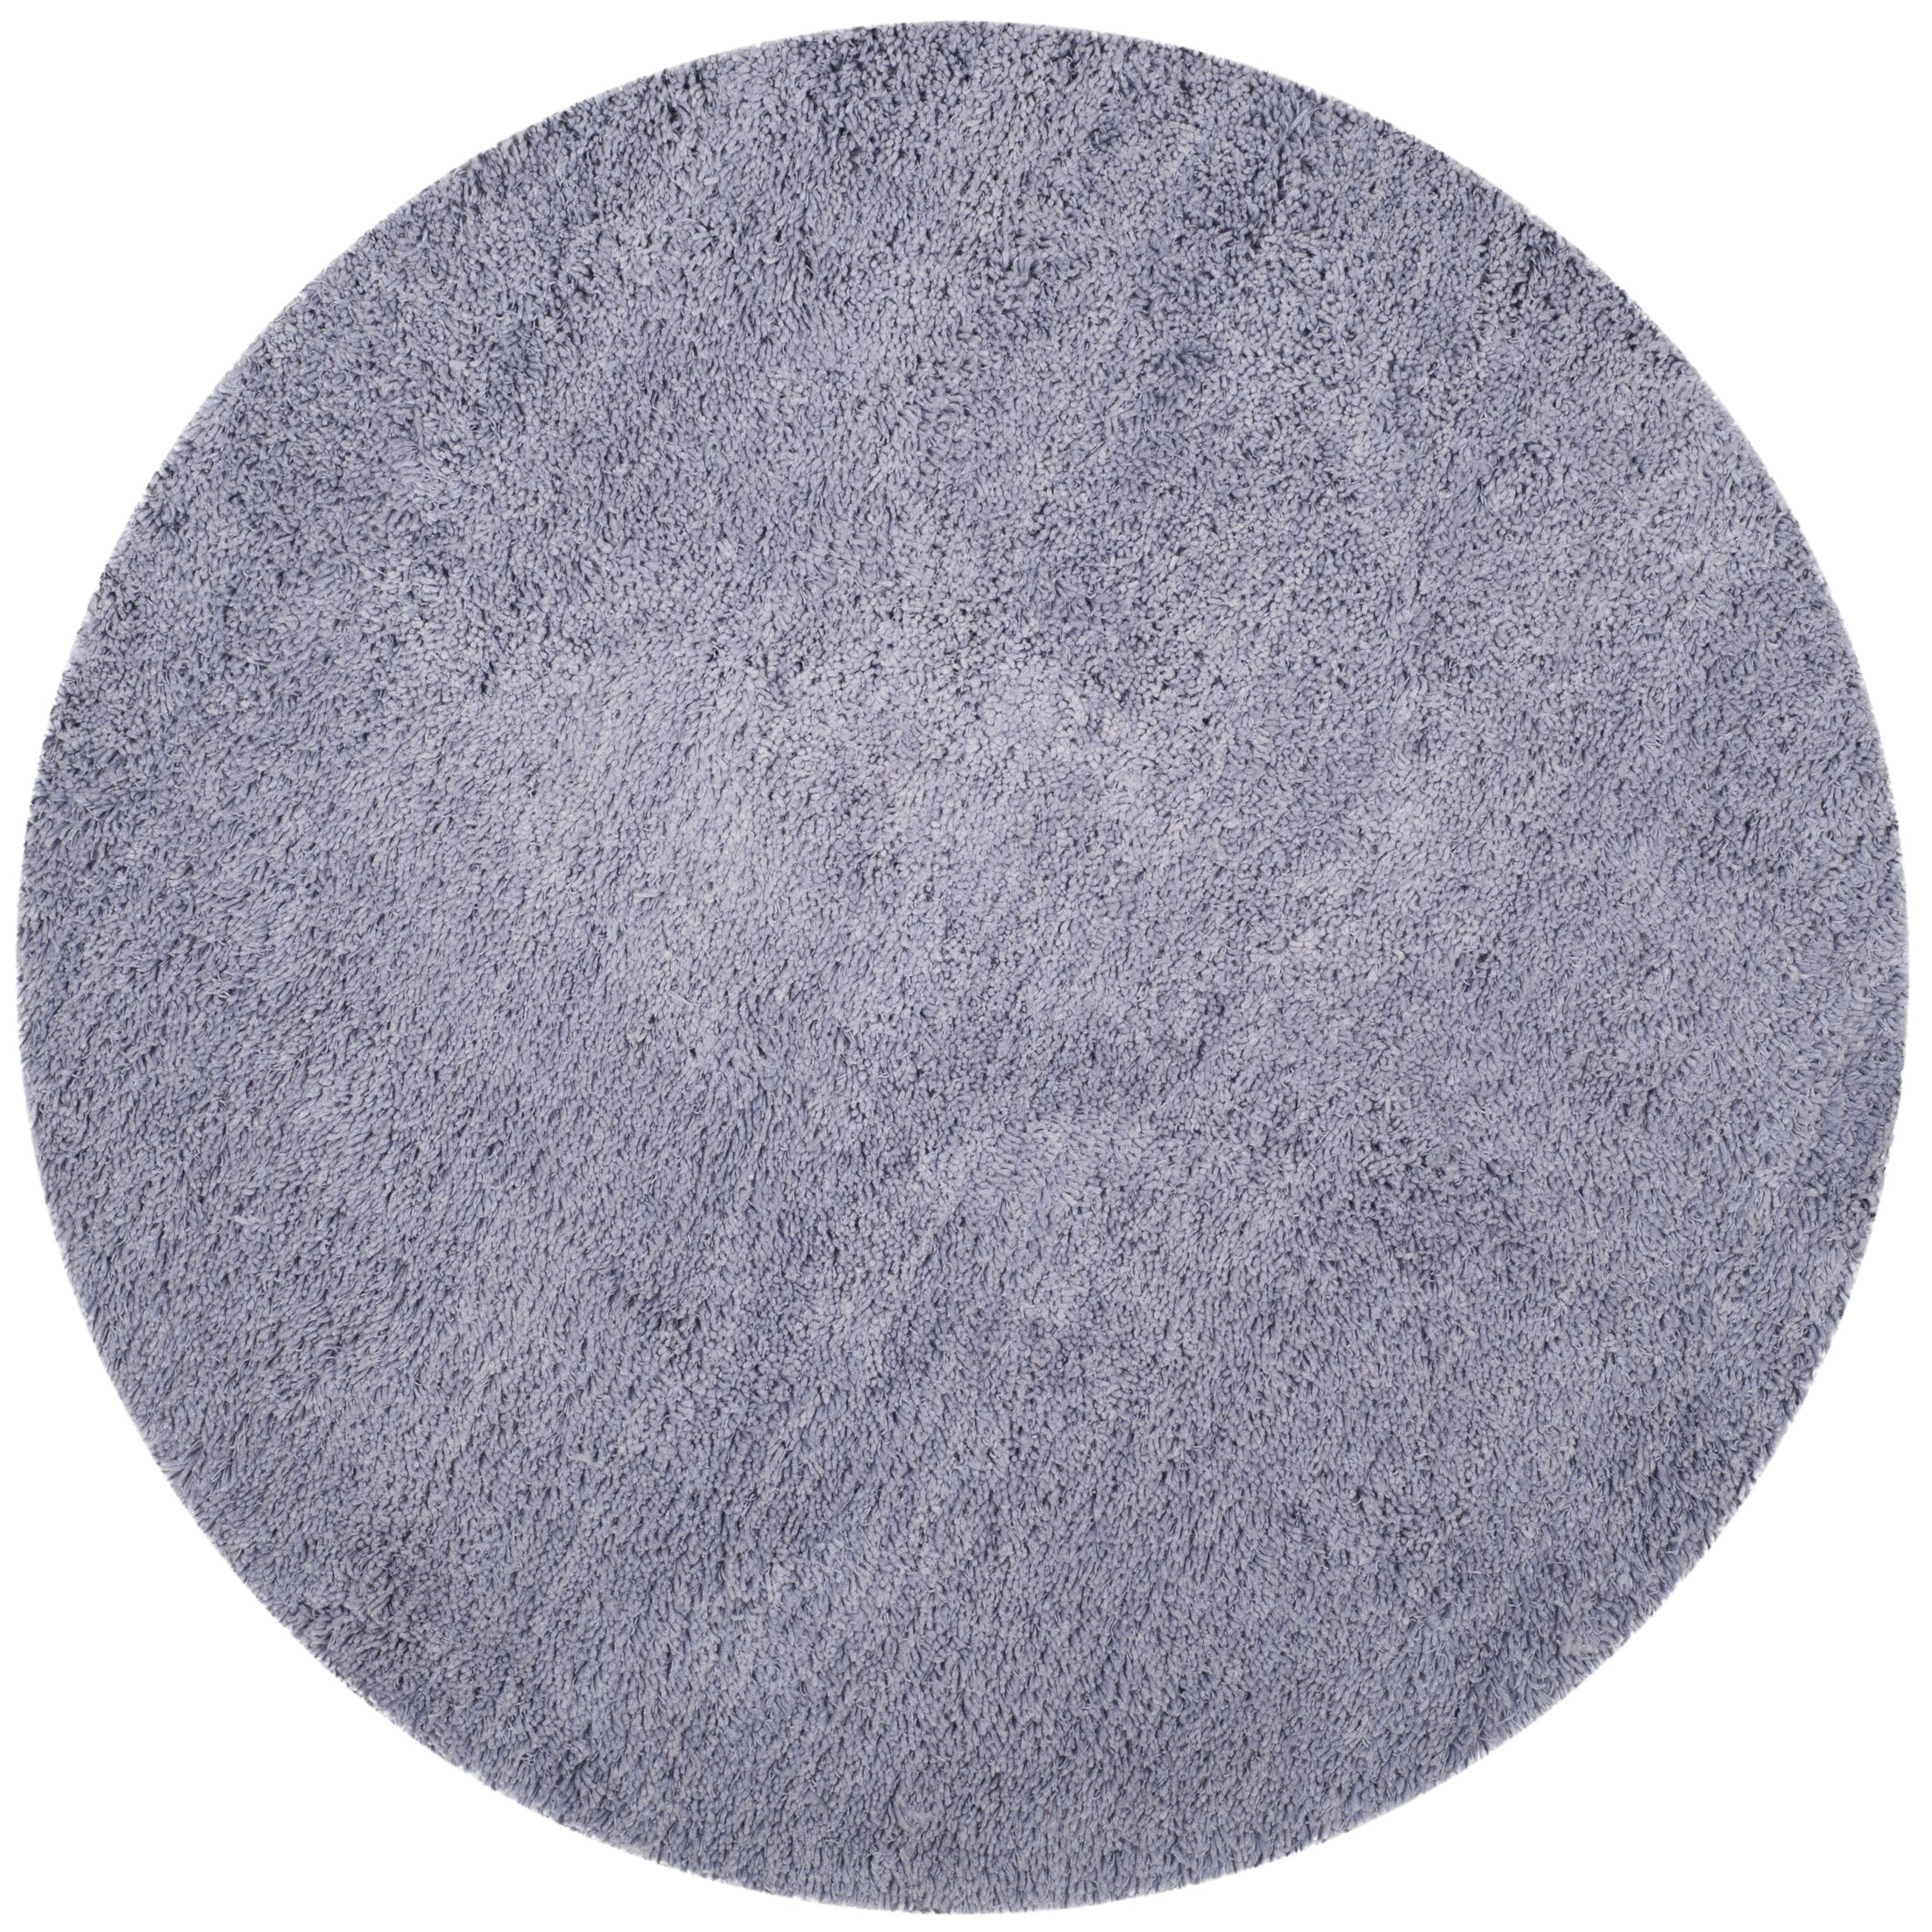 Starr Hill Hand-Woven Purple Area Rug Rug Size: Round 4'